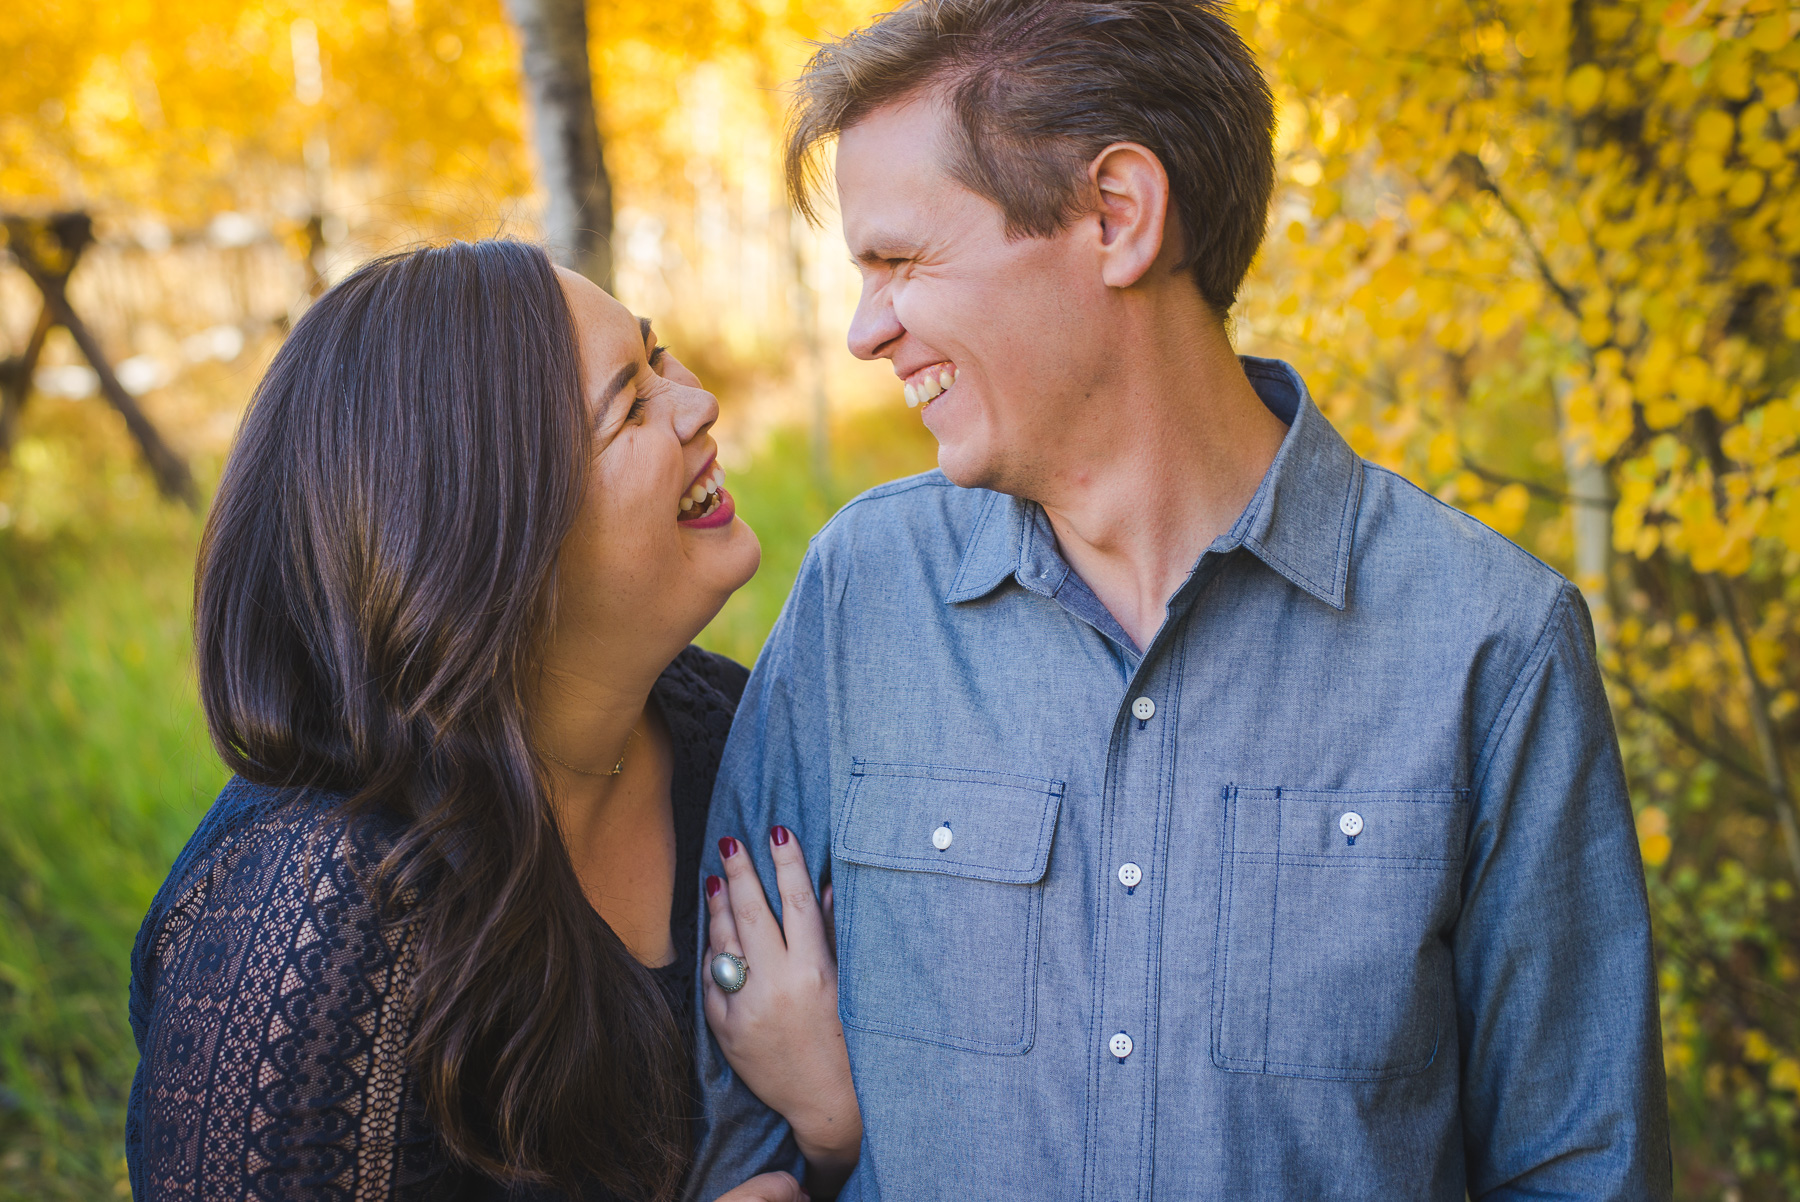 autumn engagement session in yellow aspen trees in the colorado mountains | keeping composure photography